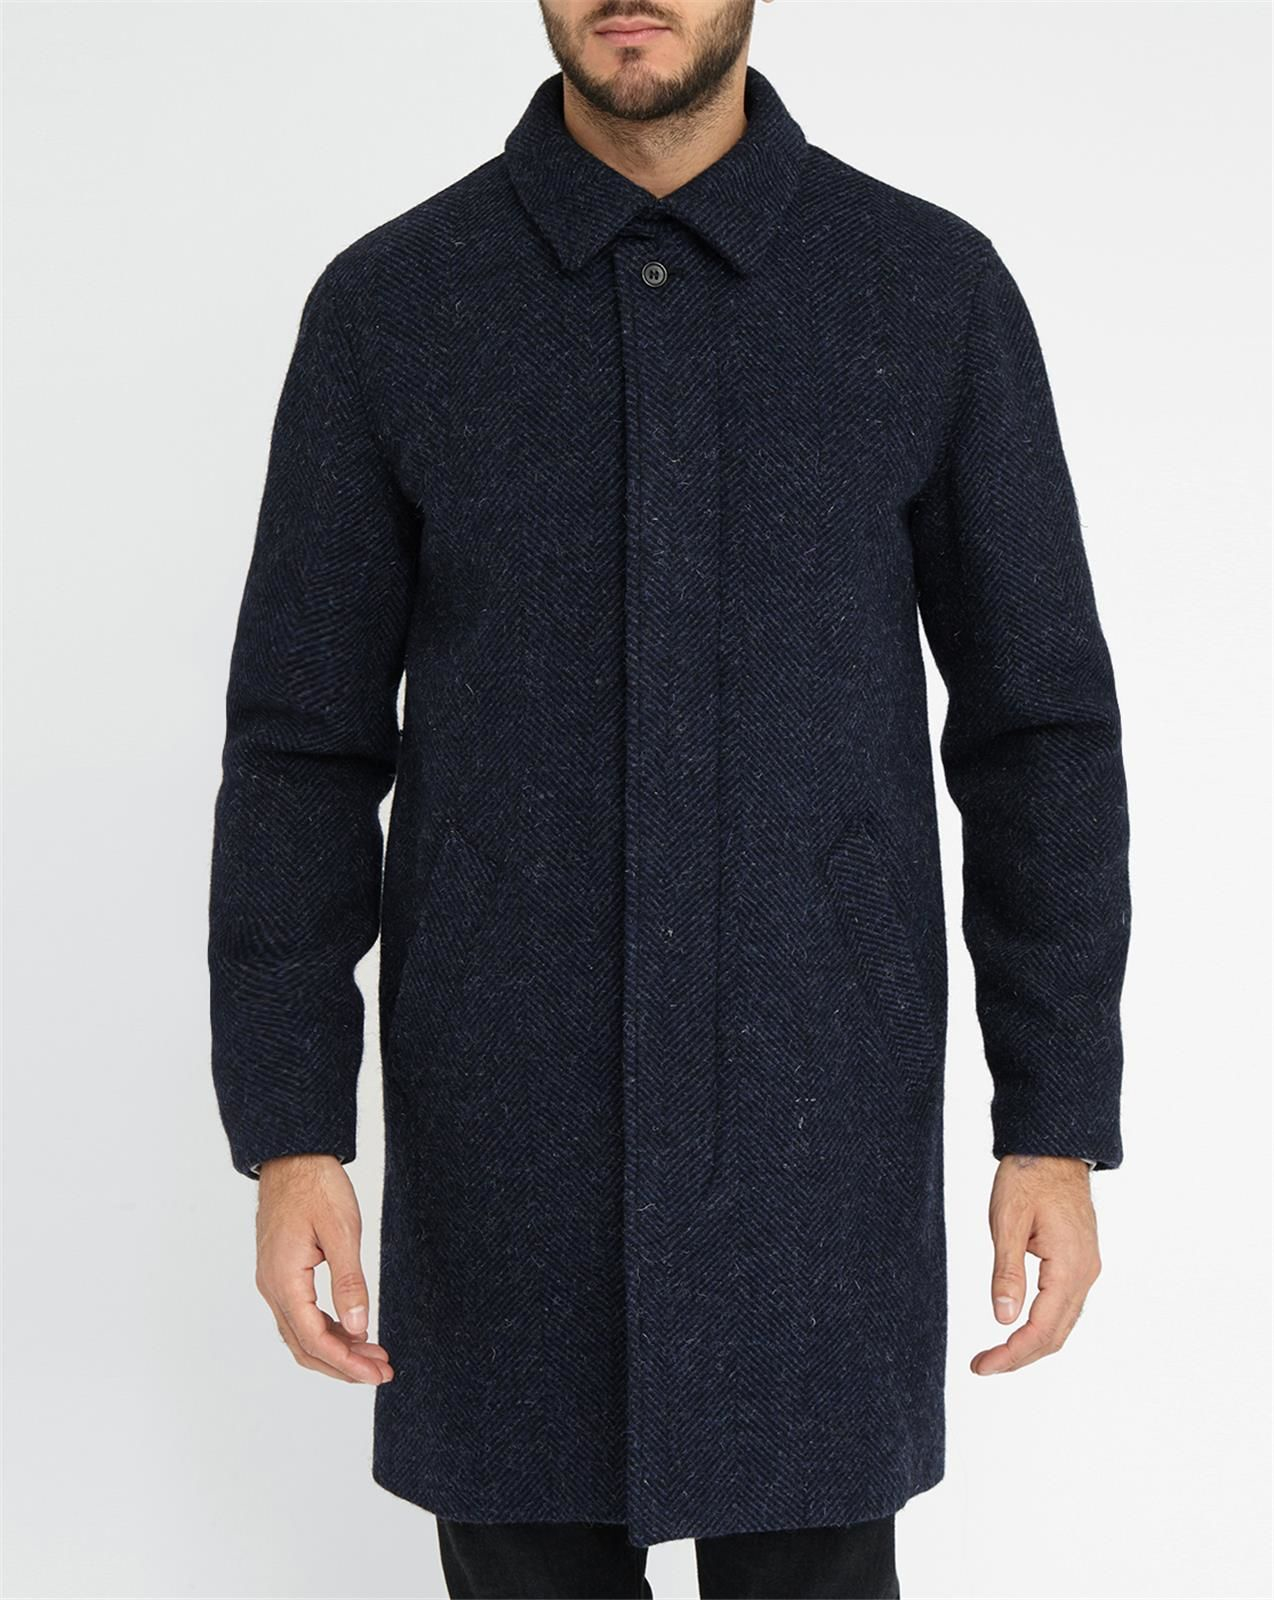 Discover men's mac coats. Browse the range of men's trench coats and raincoats at ASOS. Shop from a variety of rainy-day outerwear. Shop today at ASOS.